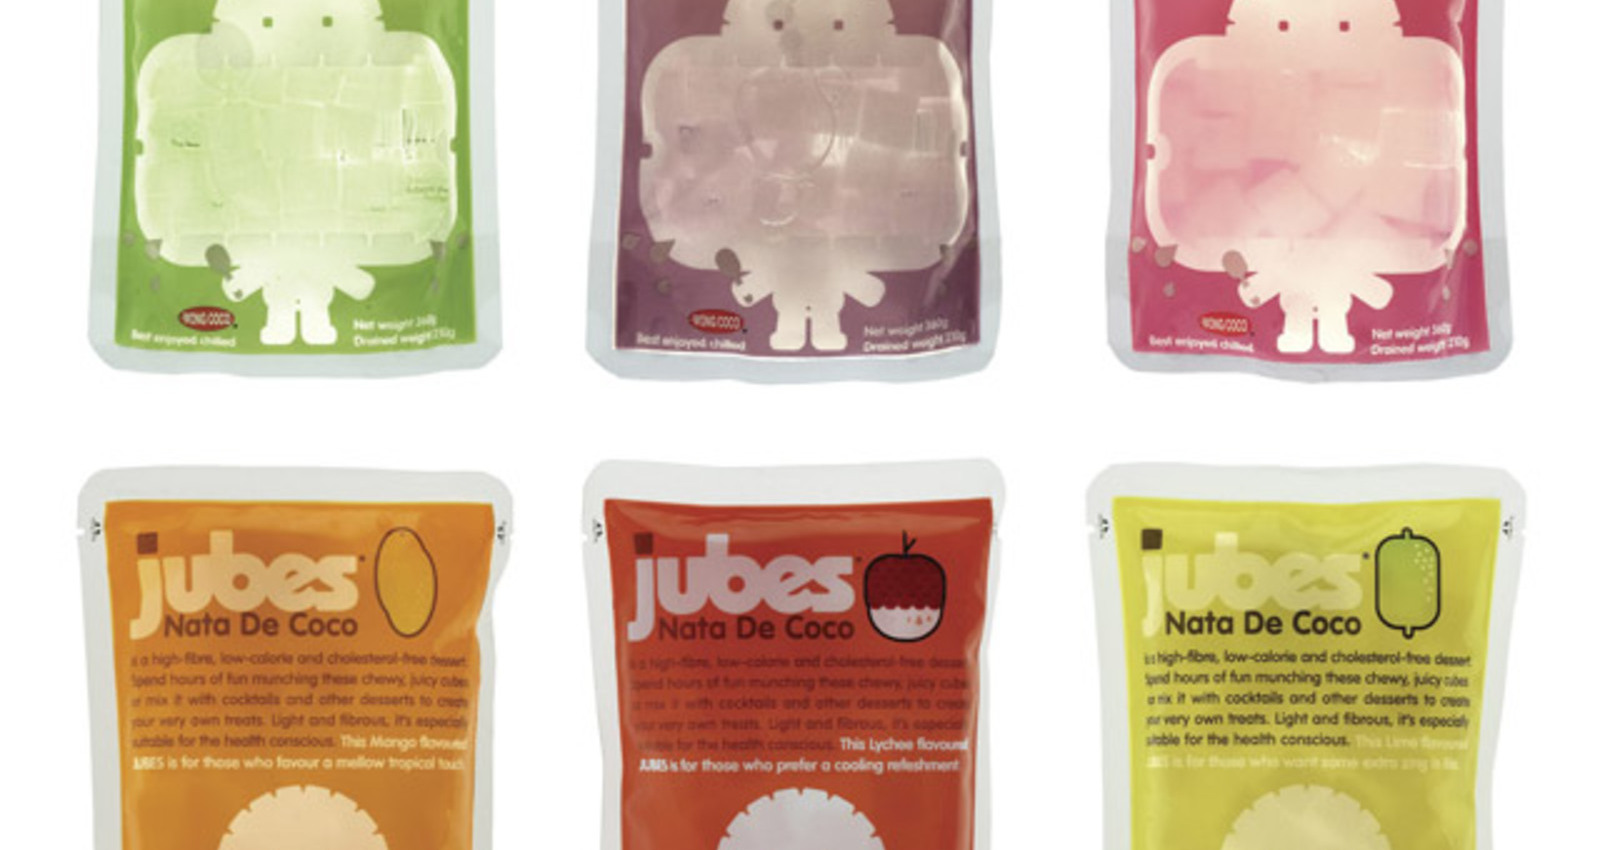 JUBES - Juicy Cubes